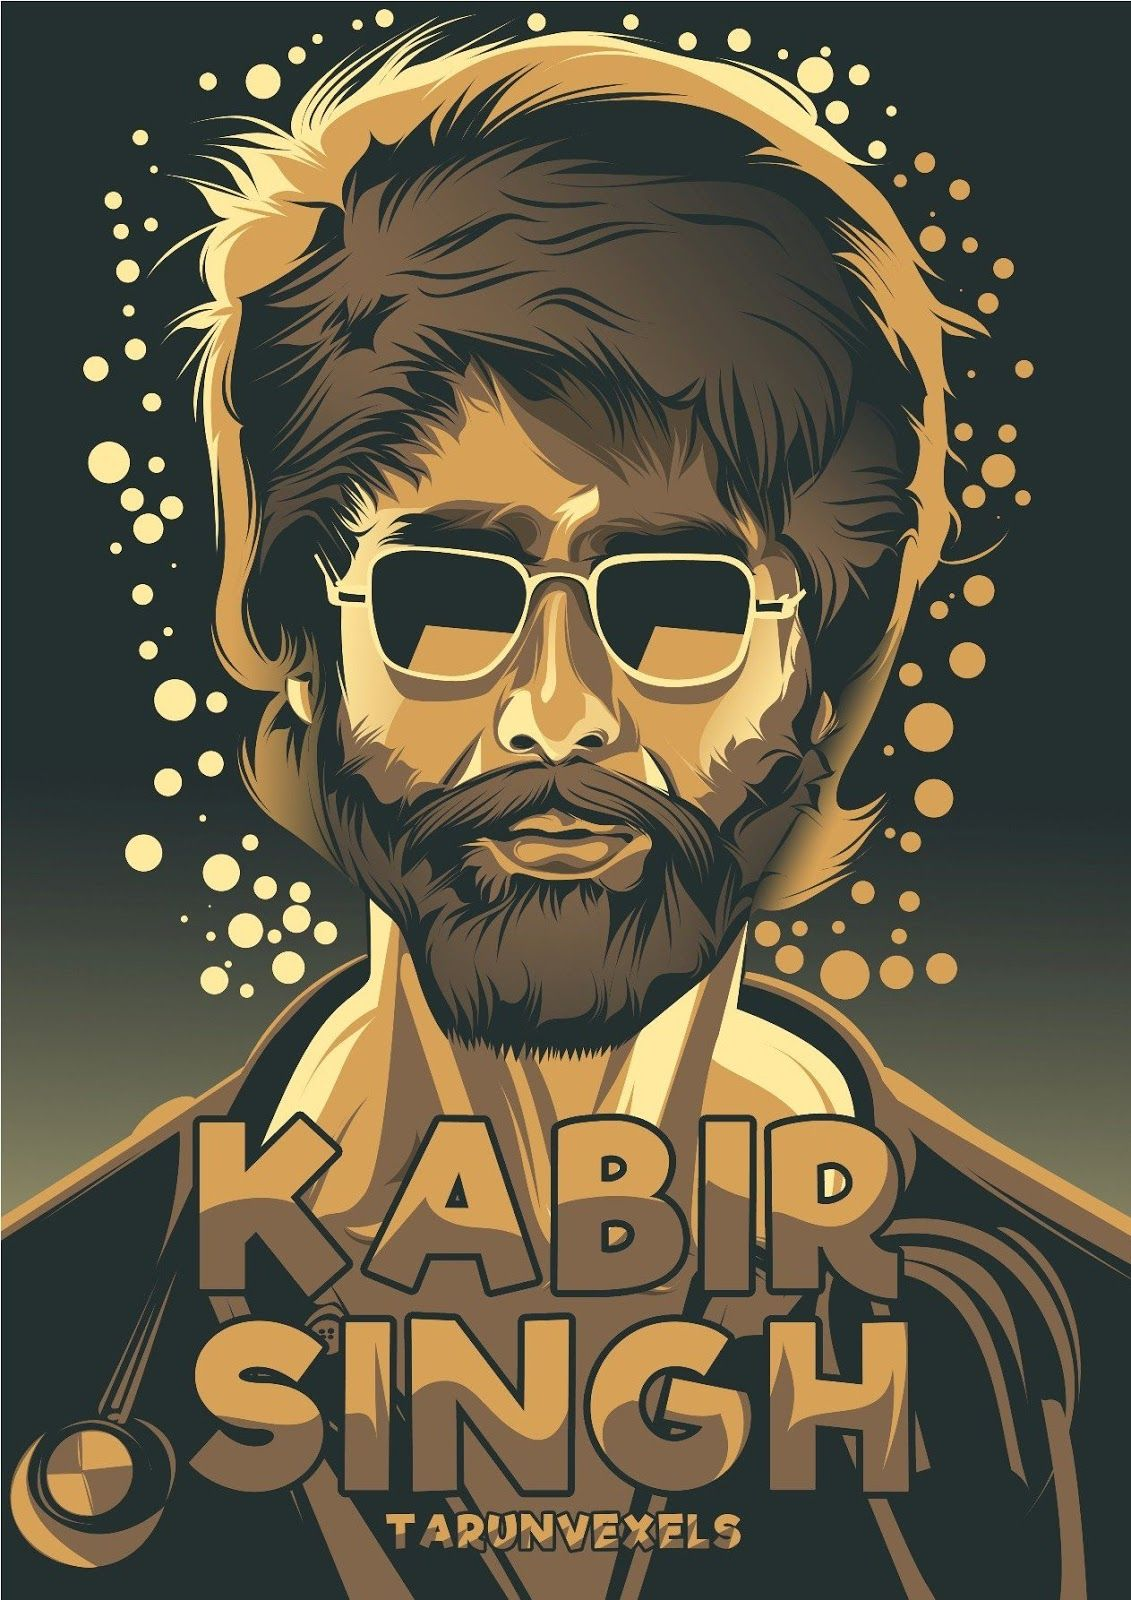 Download kabir singh Wallpaper from the above display 1131x1600